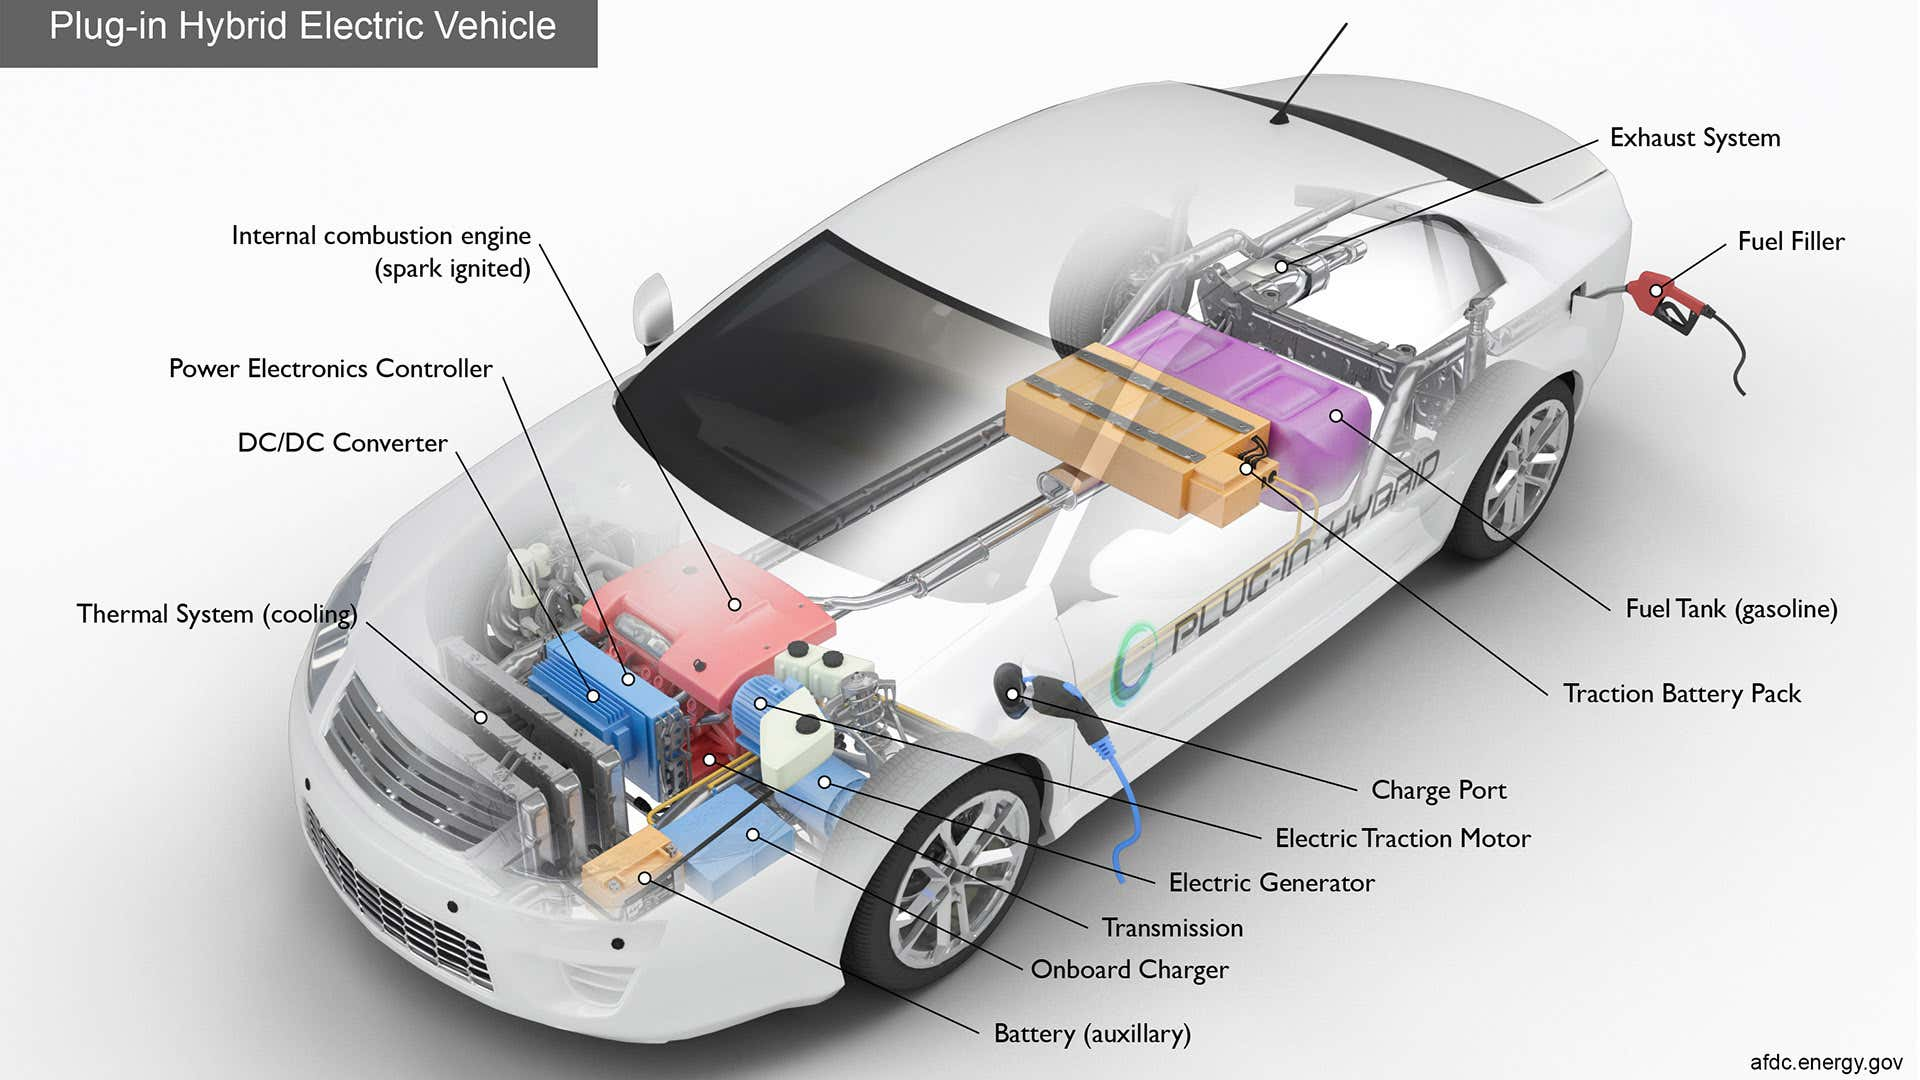 Plug-in hybrid plug ports are often located near the front quarter panel.